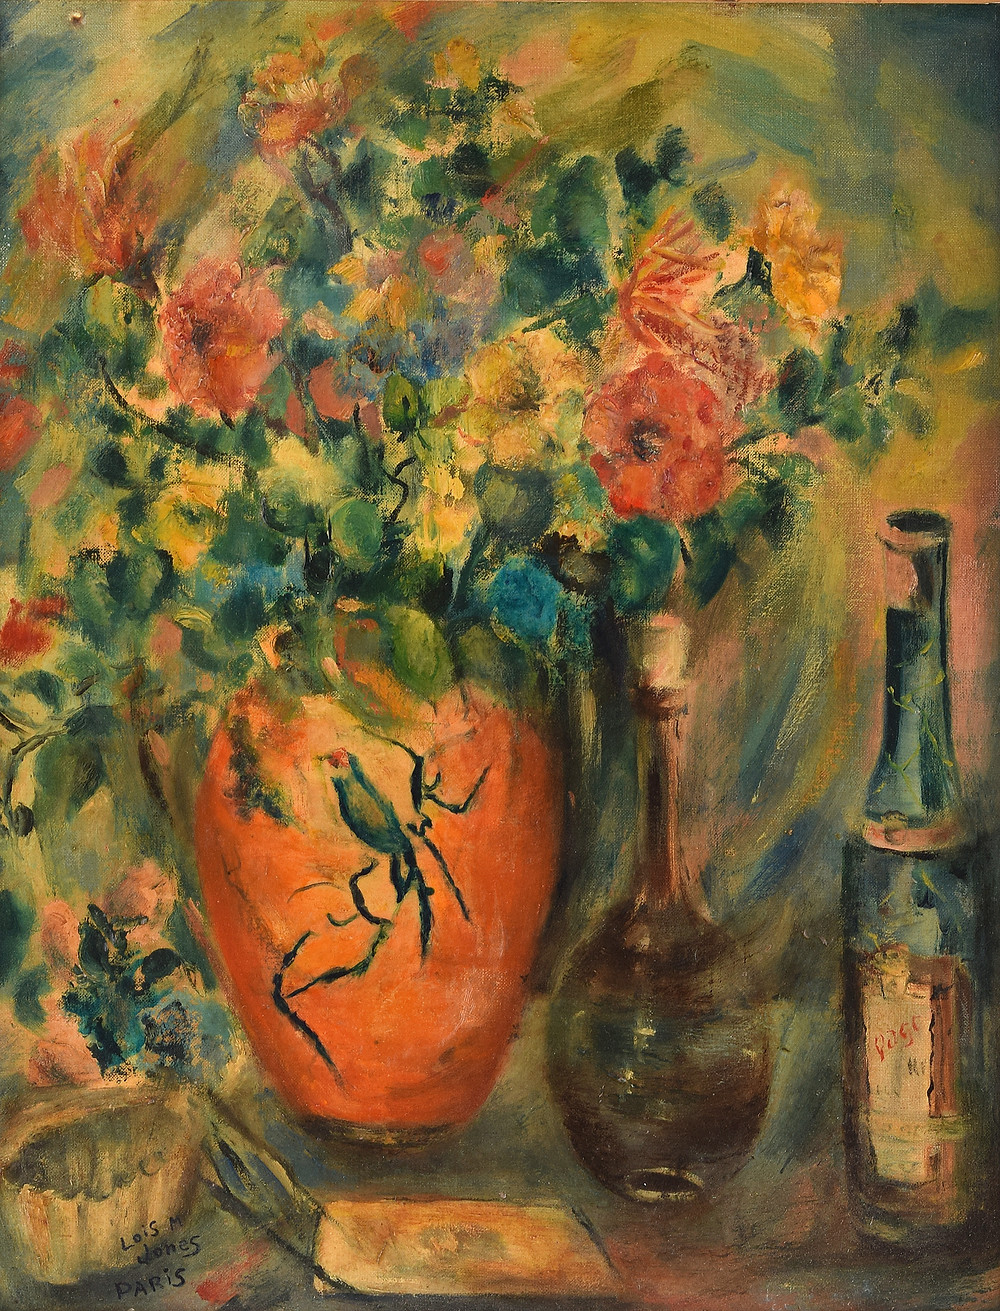 Still Life acrylic painting of a vase of flowers by Lois Marilou Jones. Selkirk Auctions.